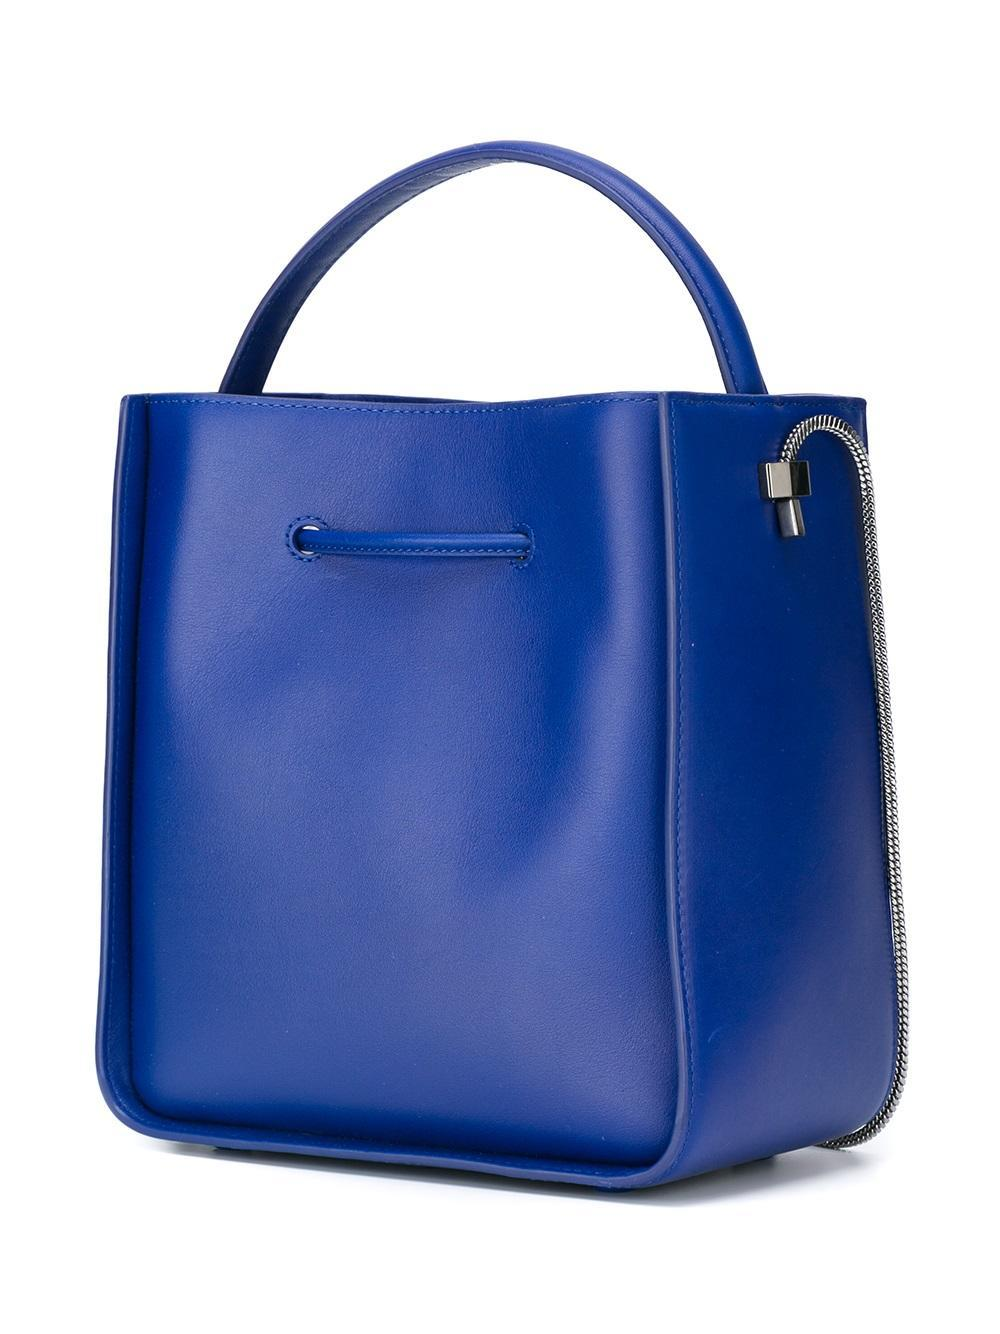 3.1 Phillip Lim Leather Small Soleil Bucket Tote in Blue